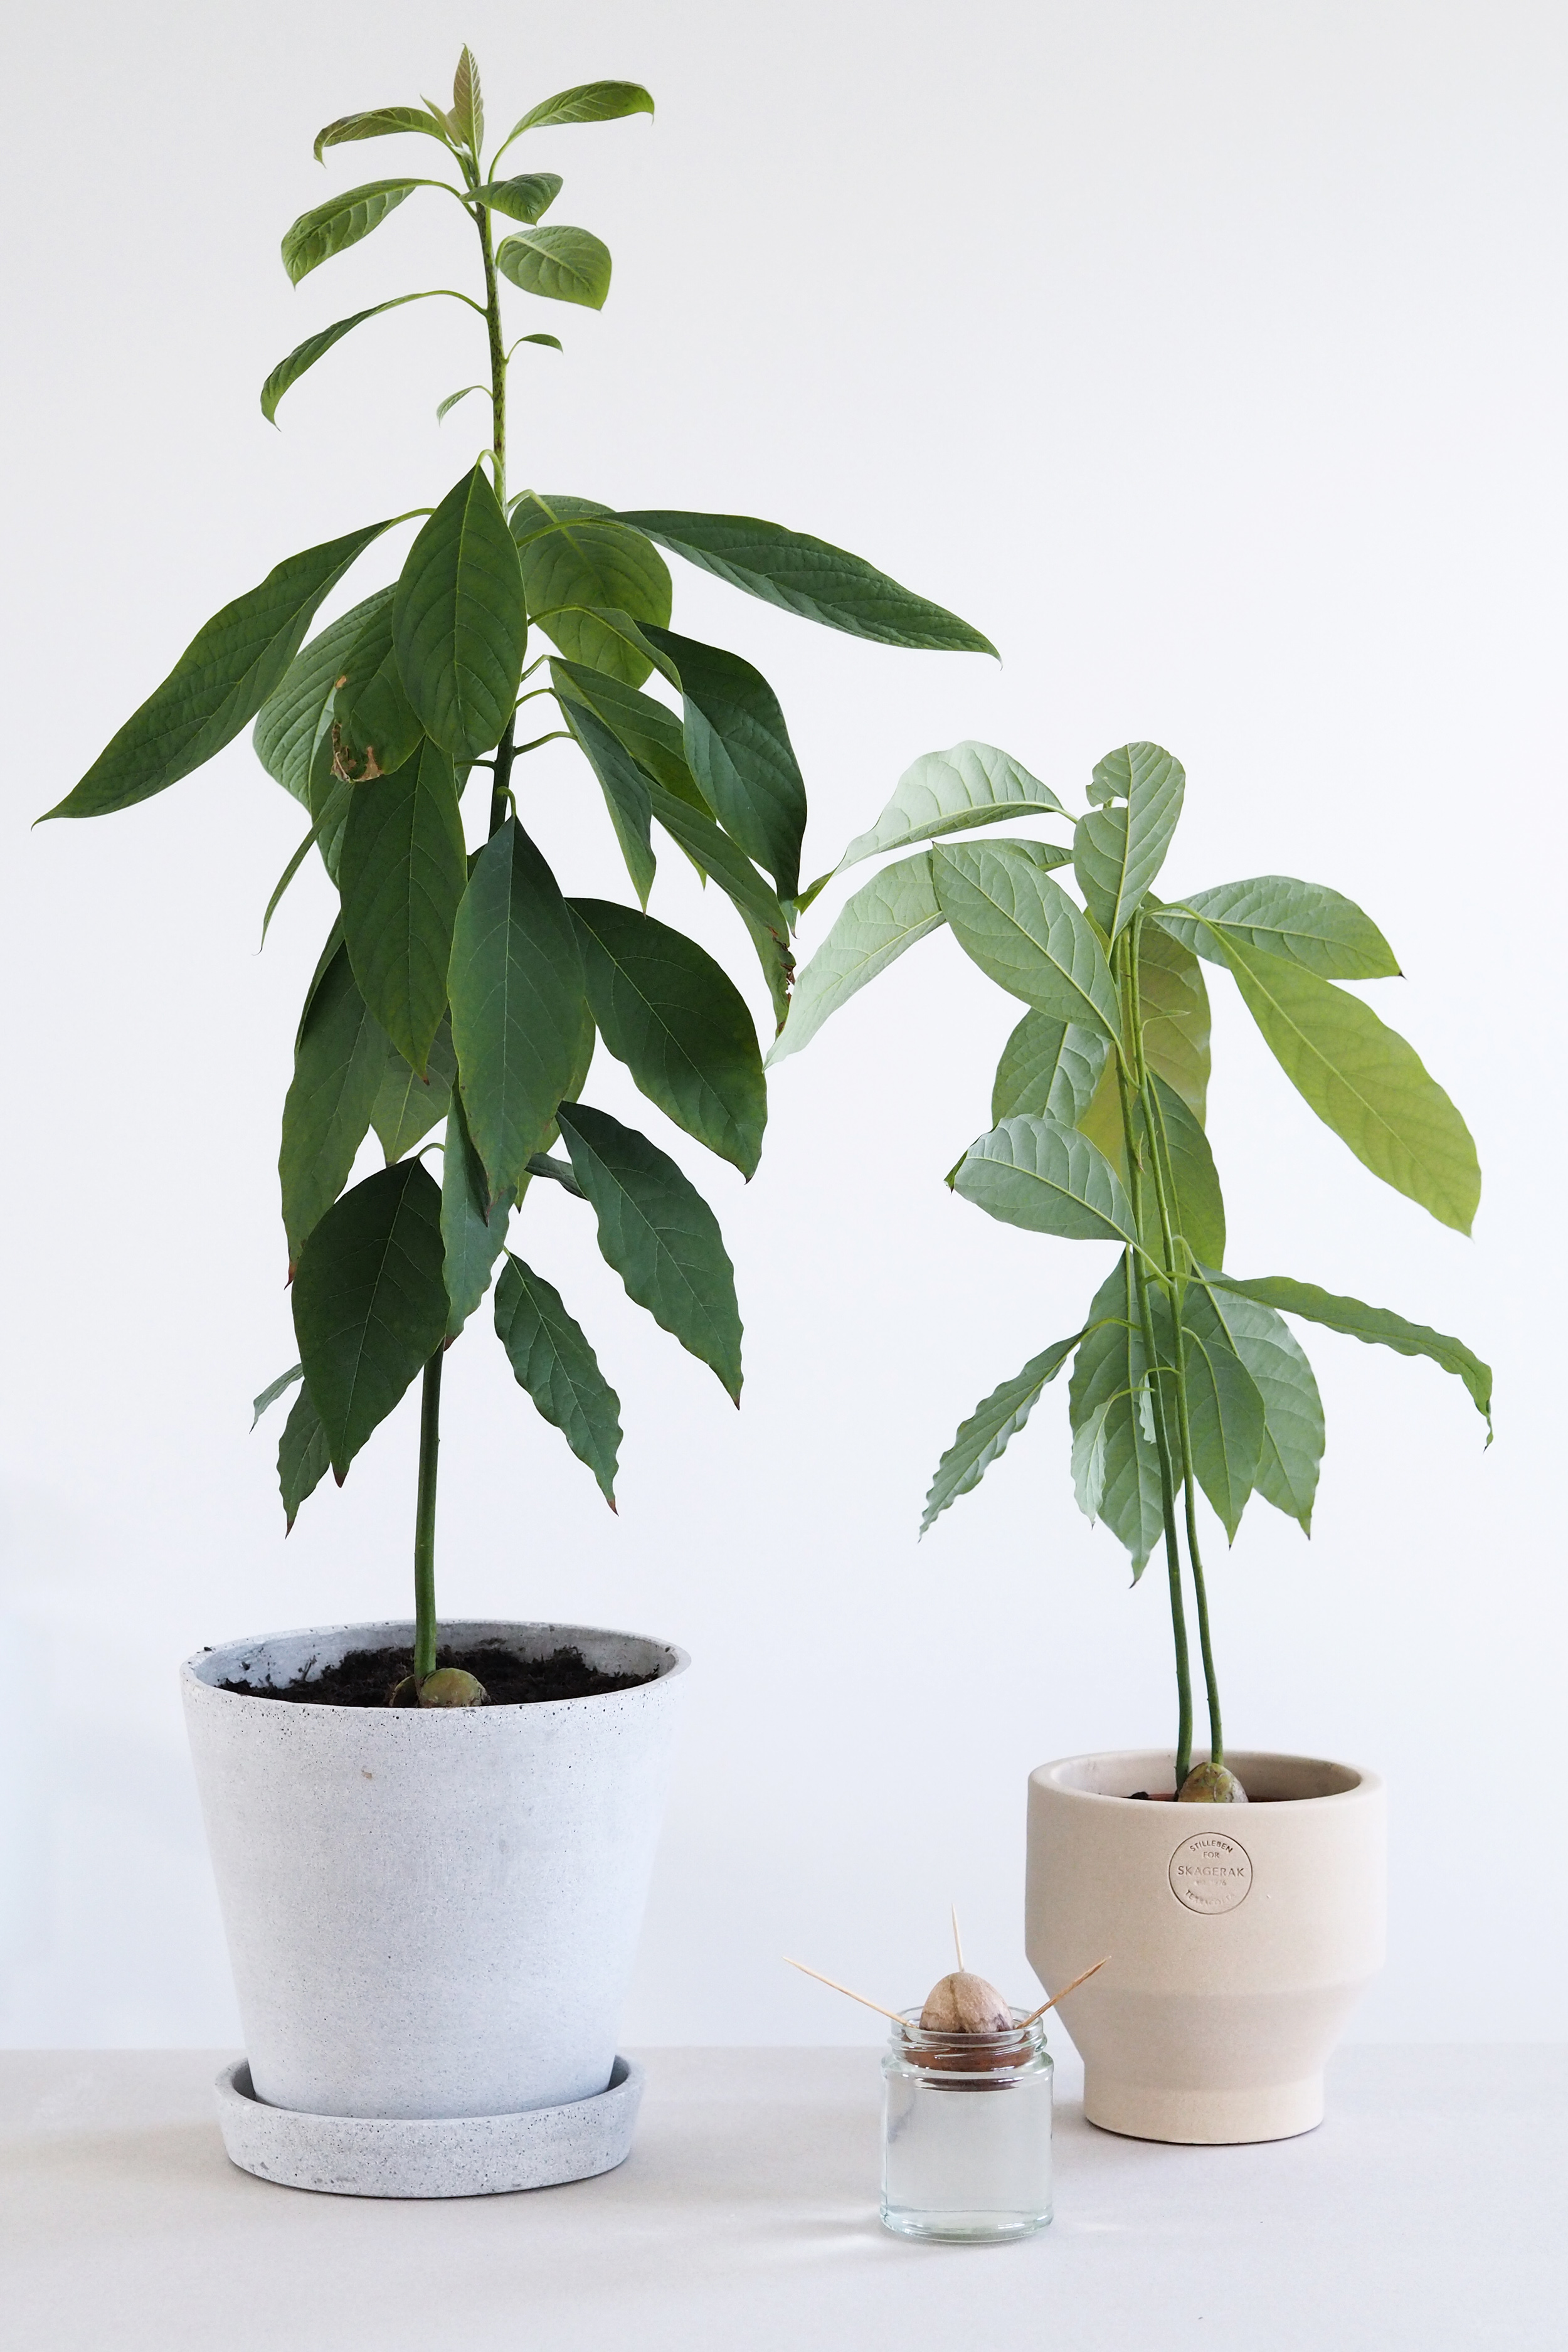 How to grow an avocado plant